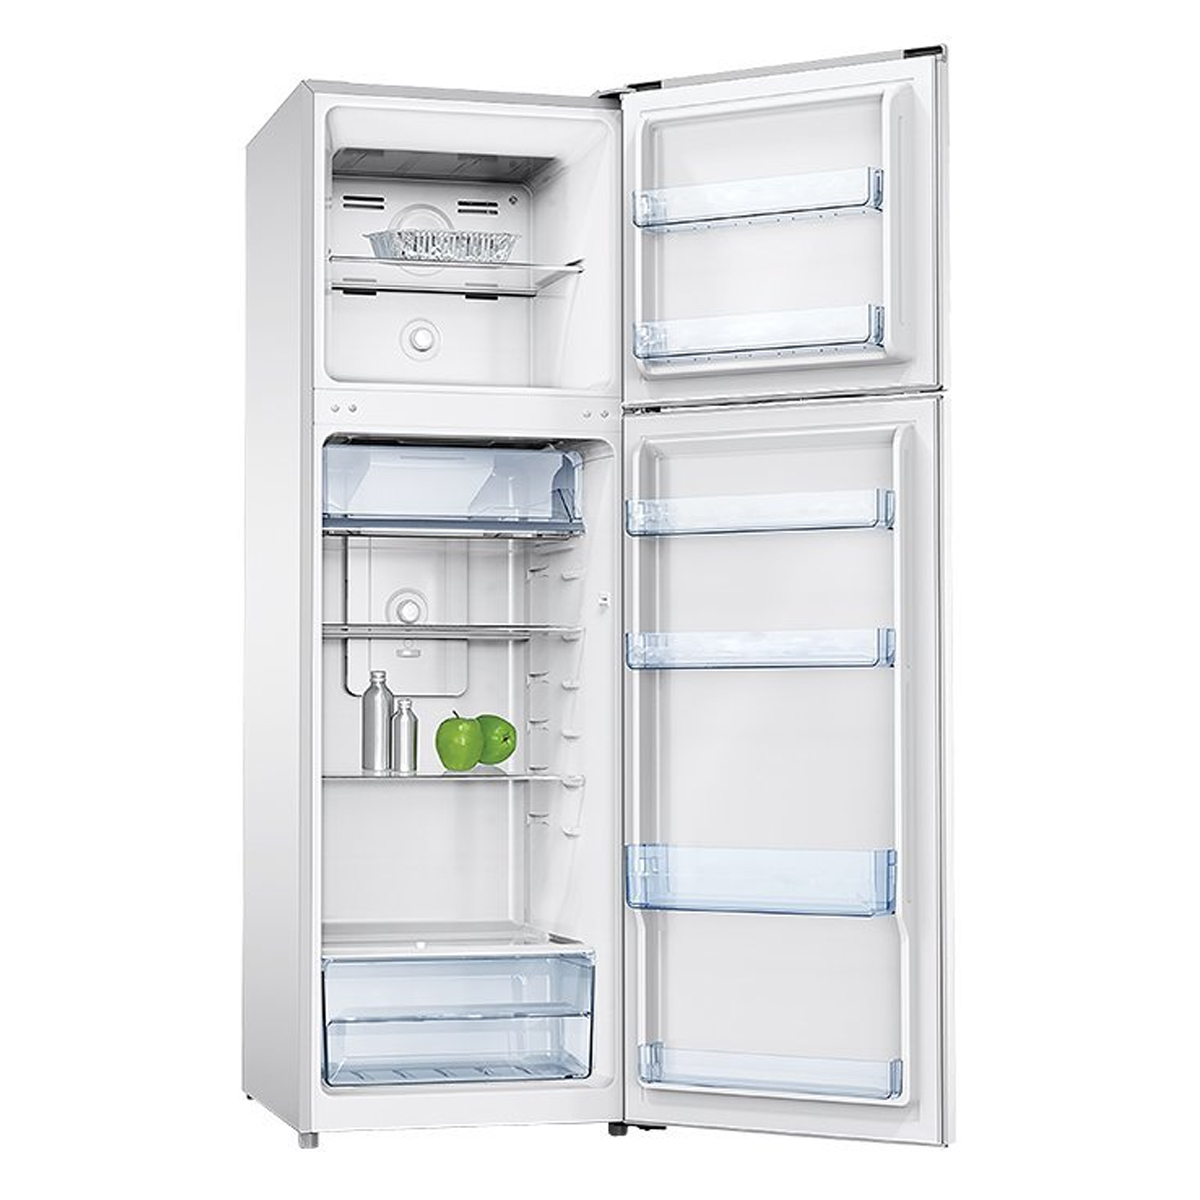 Lemair LTM268W 268Litres Top Mount Fridge 81996